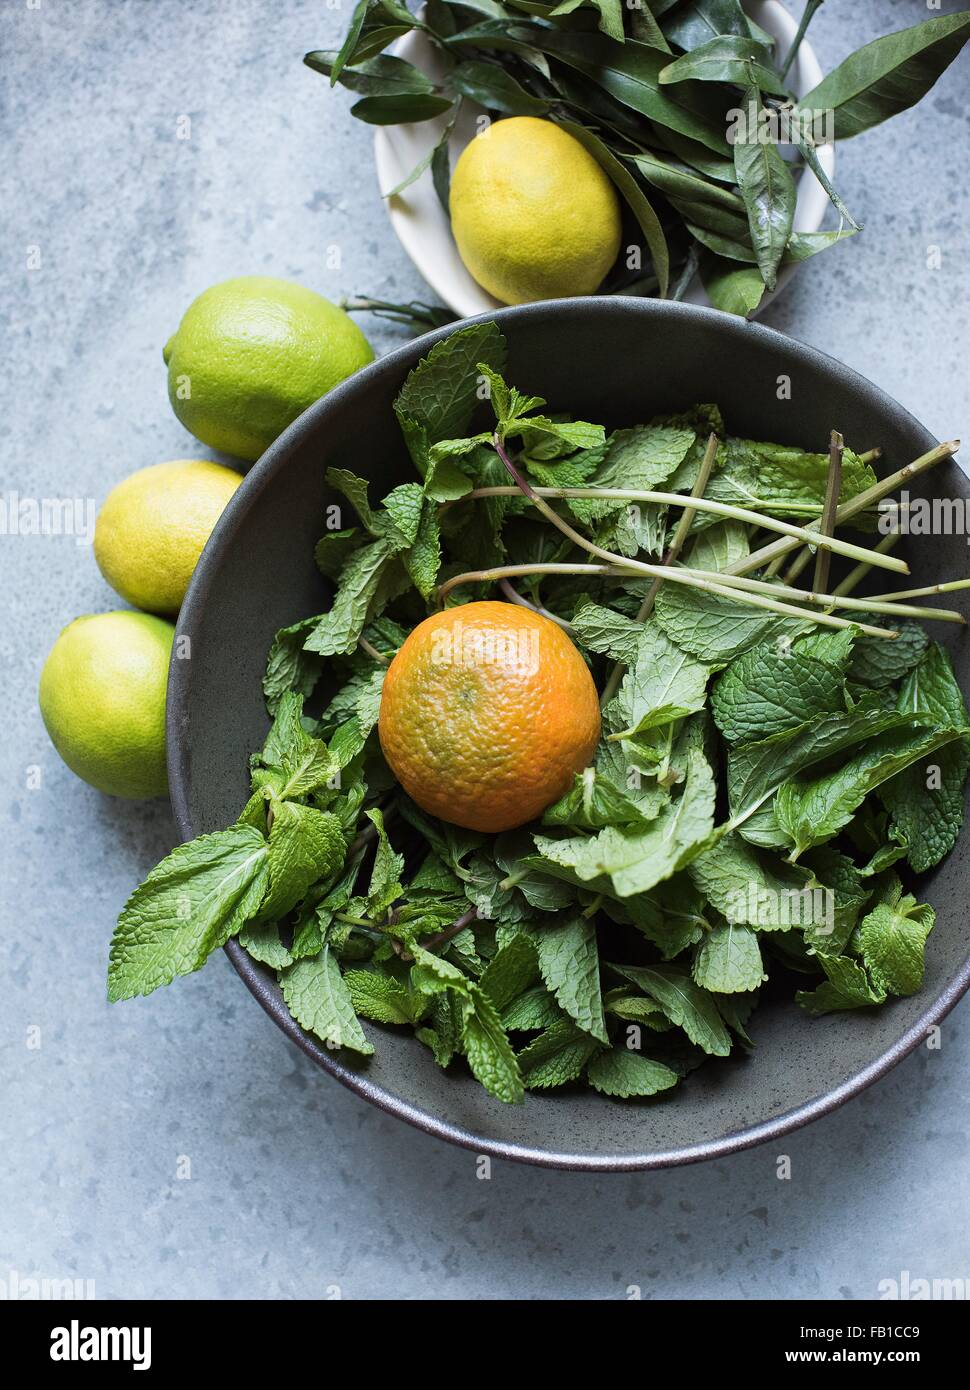 Overhead view of mint leaves and citrus fruits in bowl Stock Photo